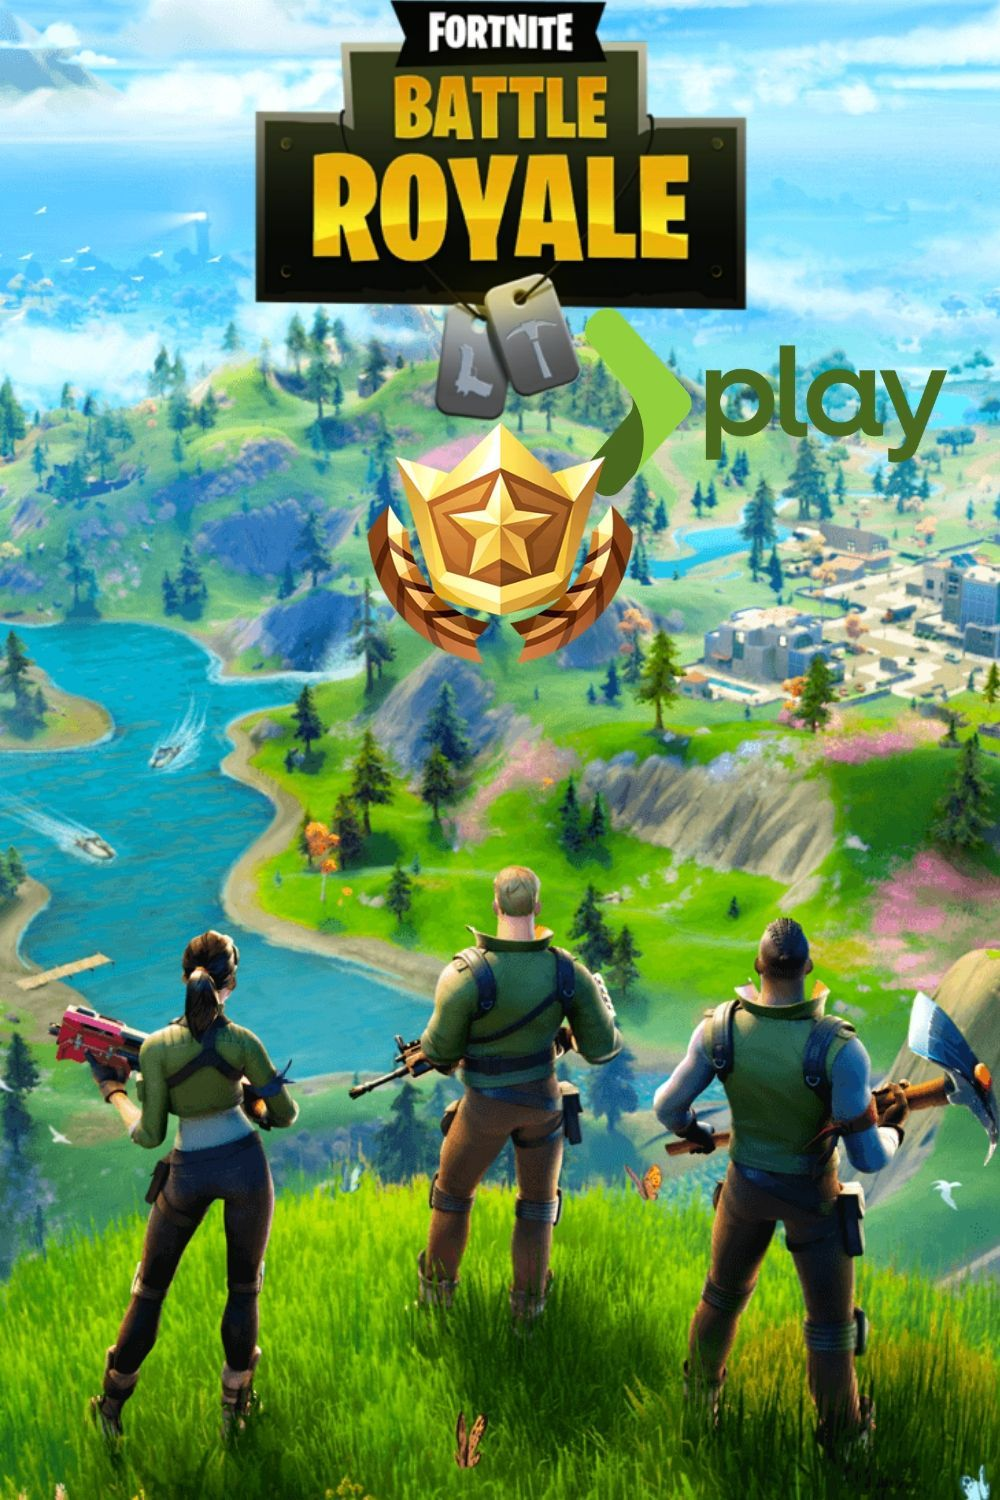 Do you want to play the Fortnite battle royale game? Don't